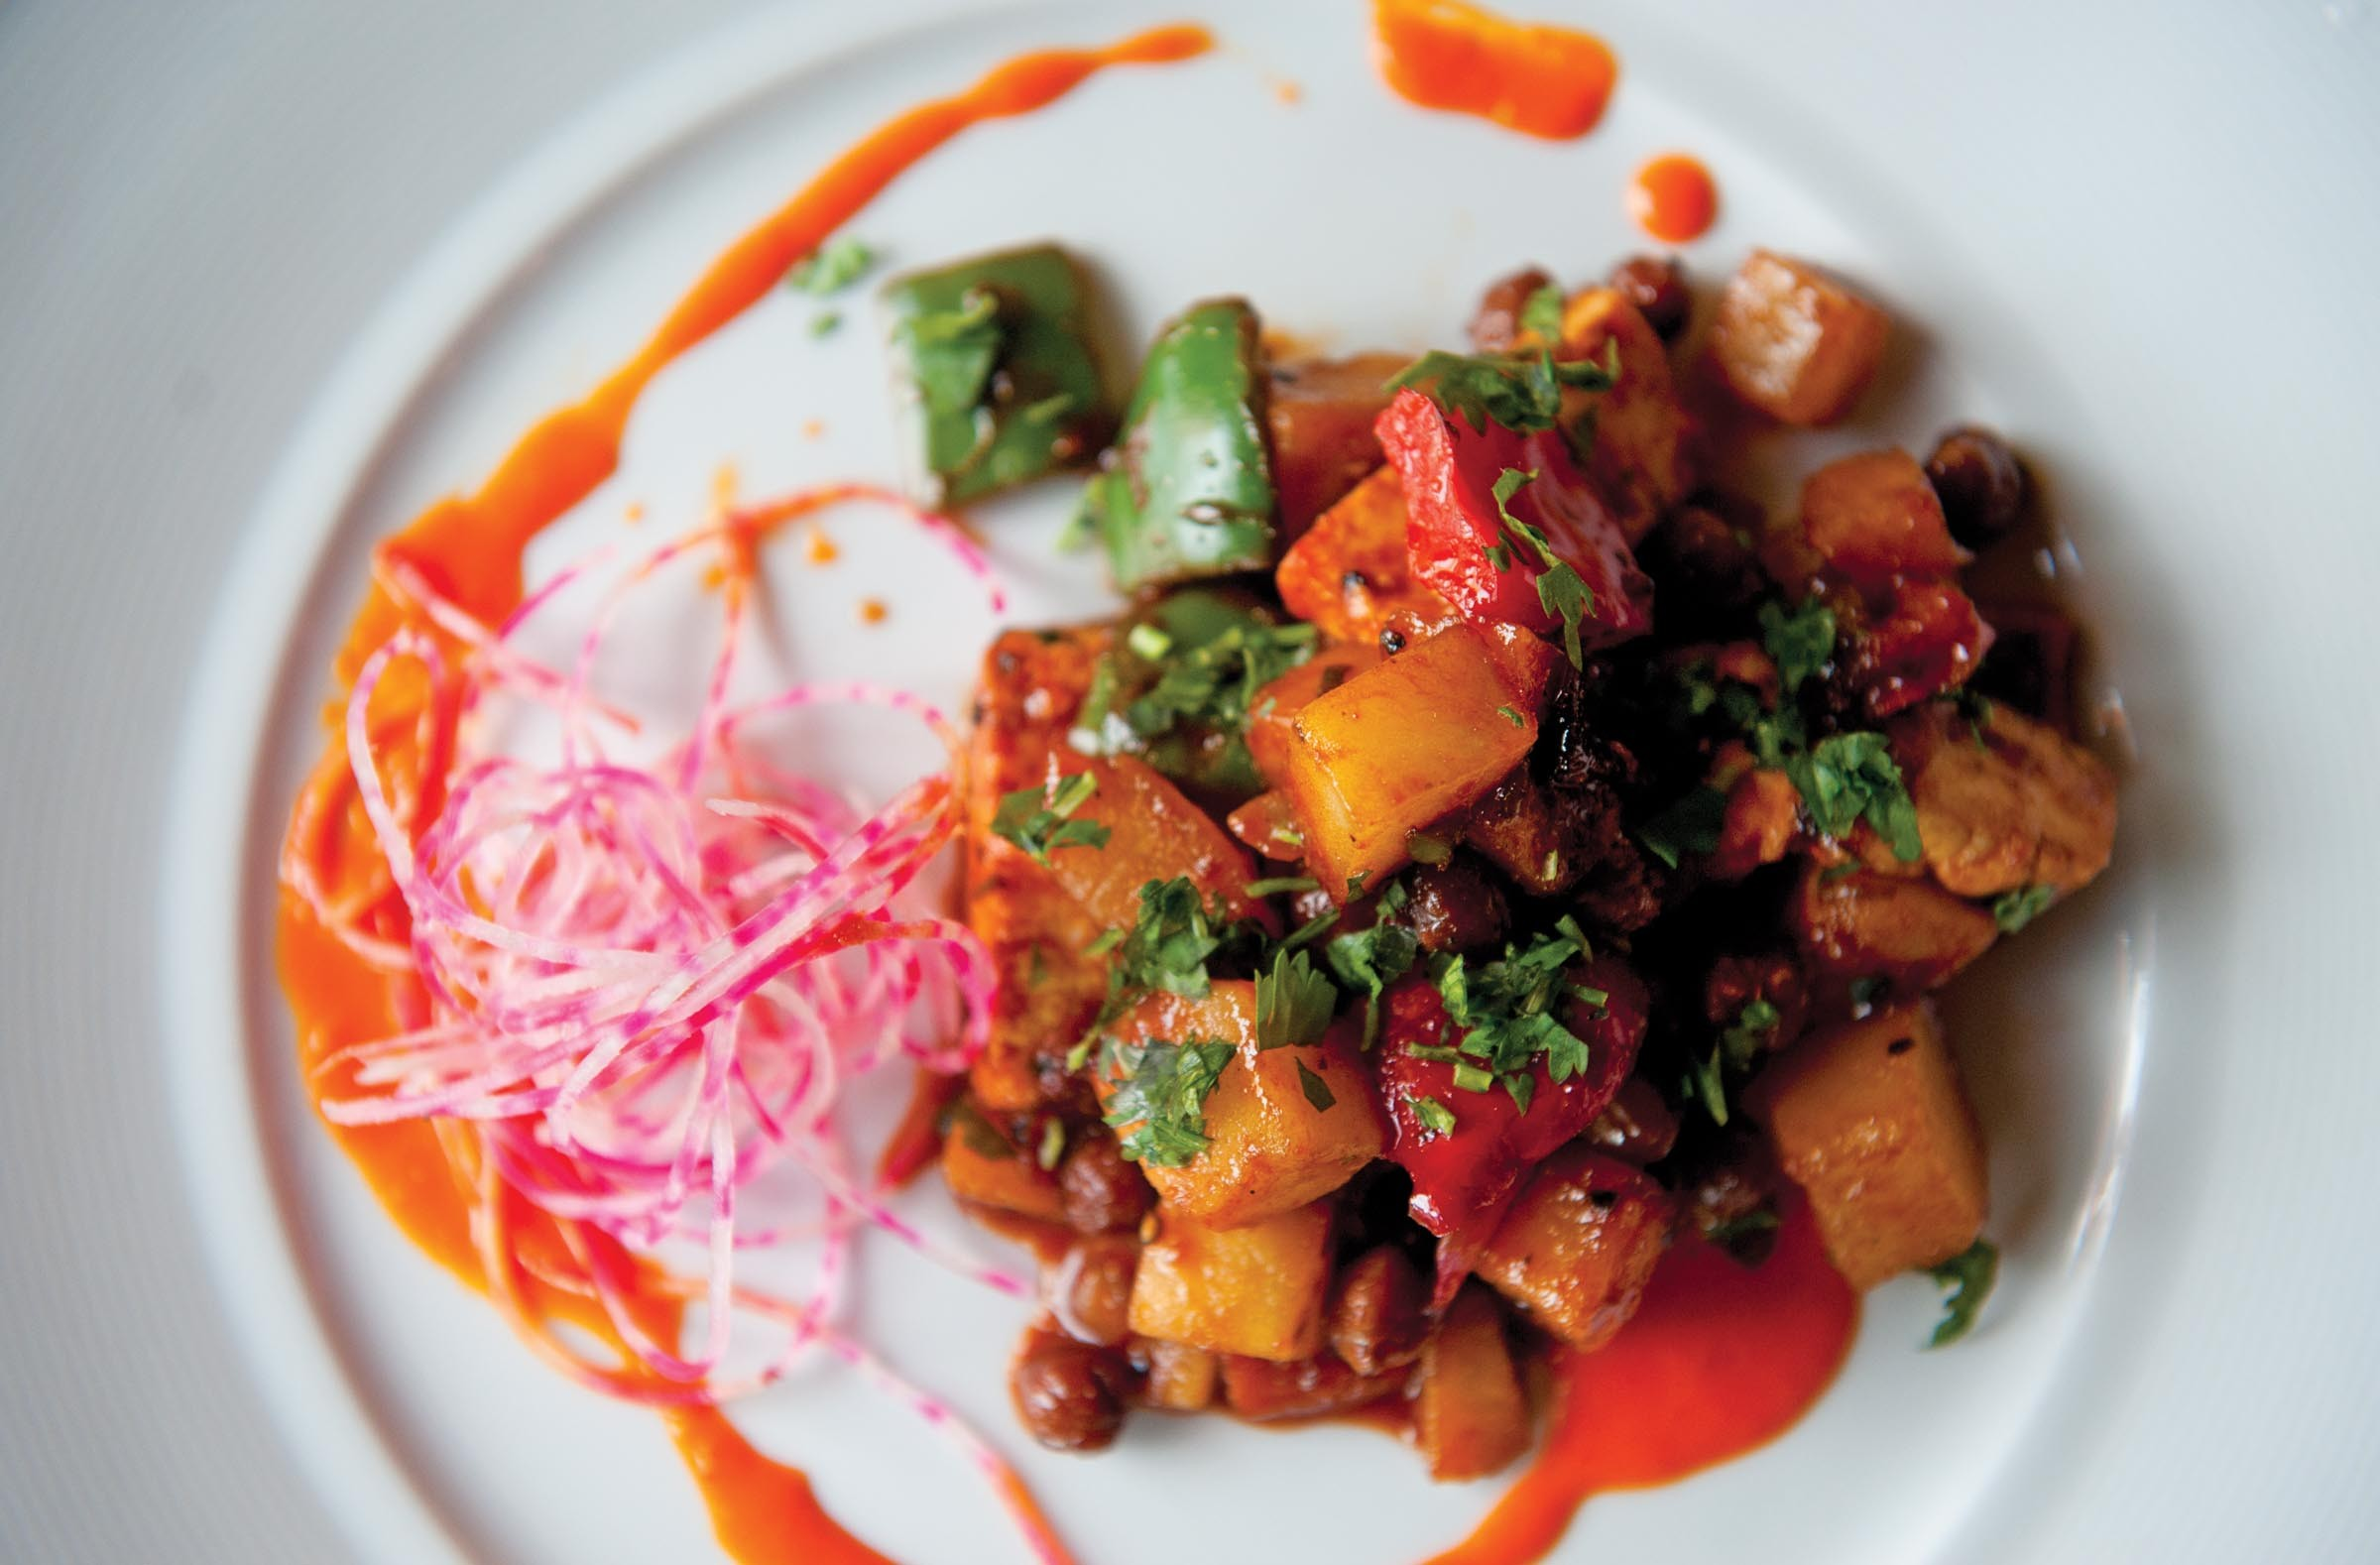 At Curry Craft in Carytown, the tak a tak includes chunks of spiced paneer, potatoes, assam tea-marinated garbanzos and a zesty glaze. - SCOTT ELMQUIST